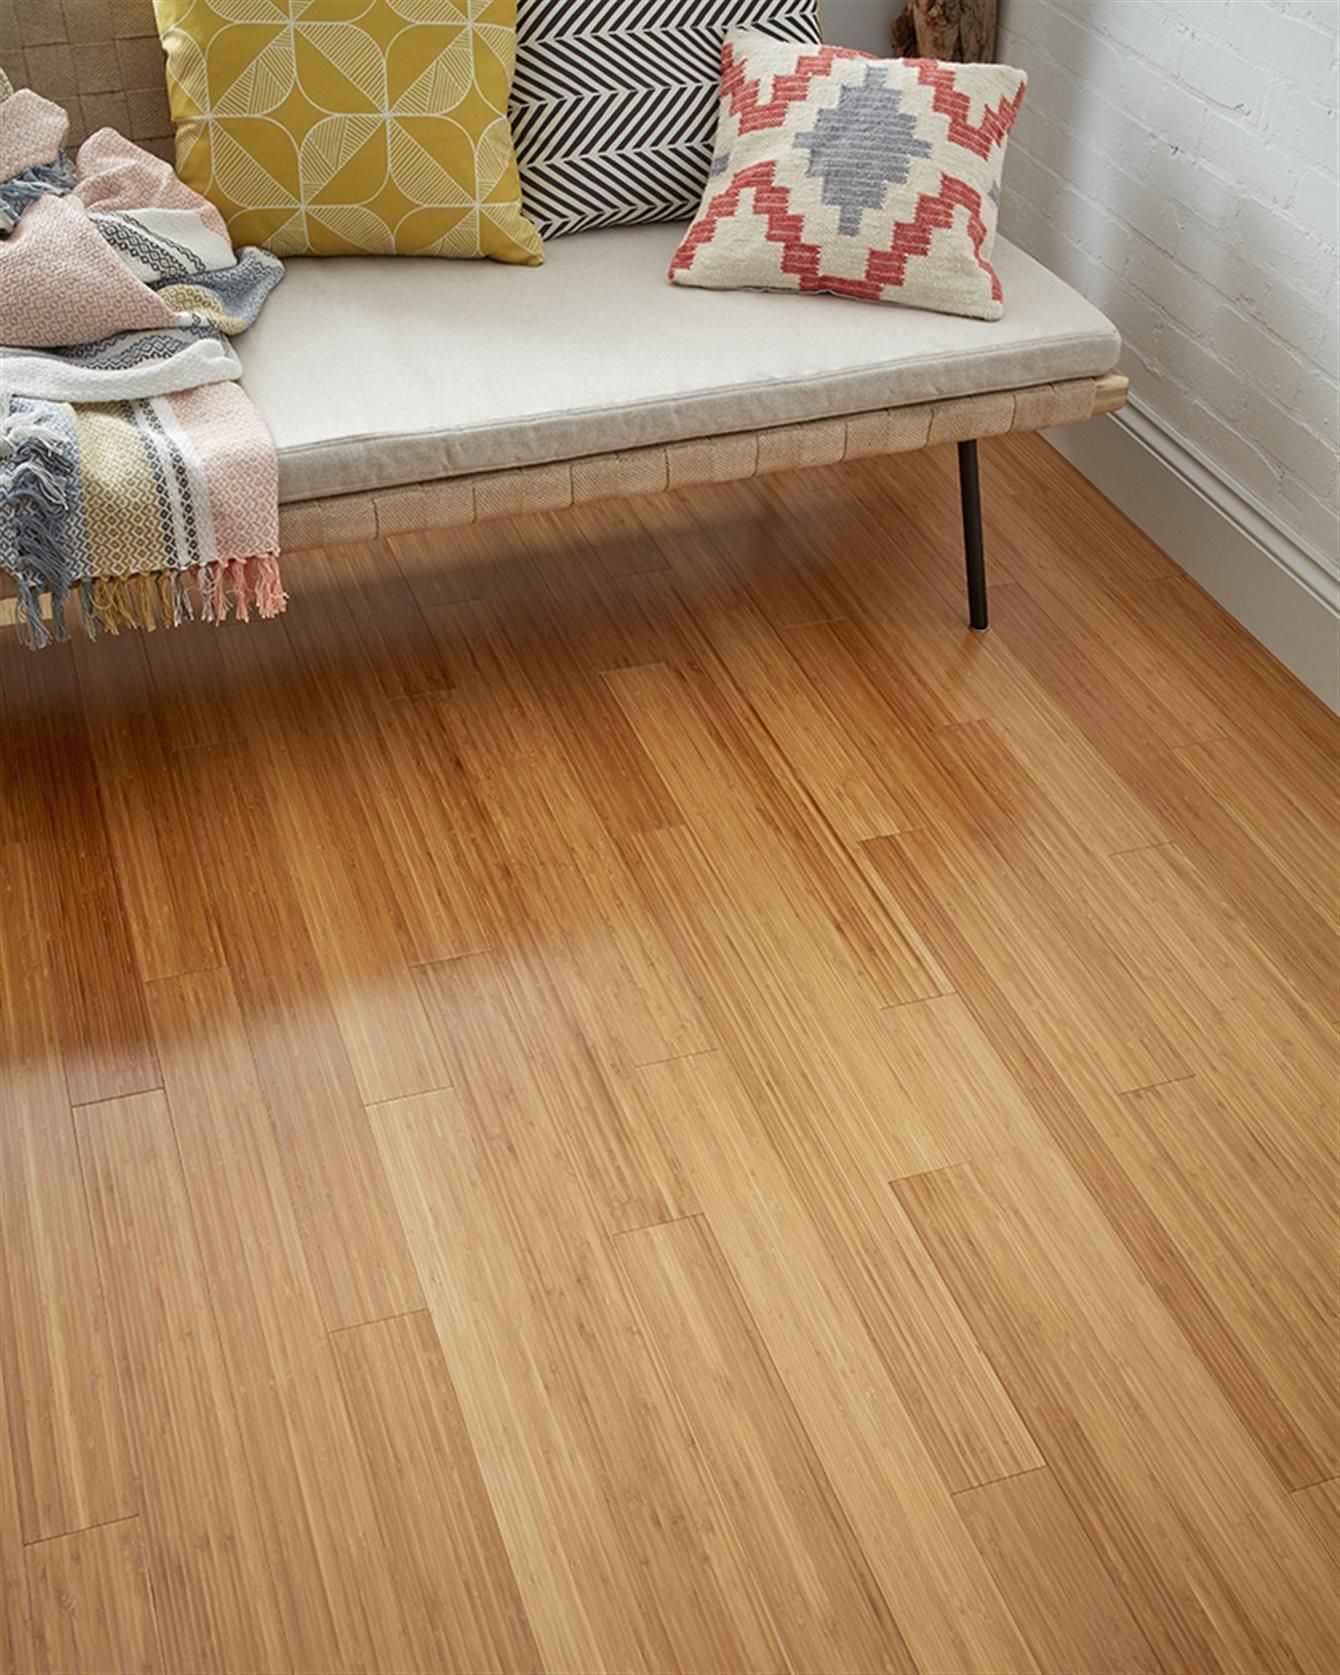 11 Awesome Bamboo Flooring Design That You Never Imagined